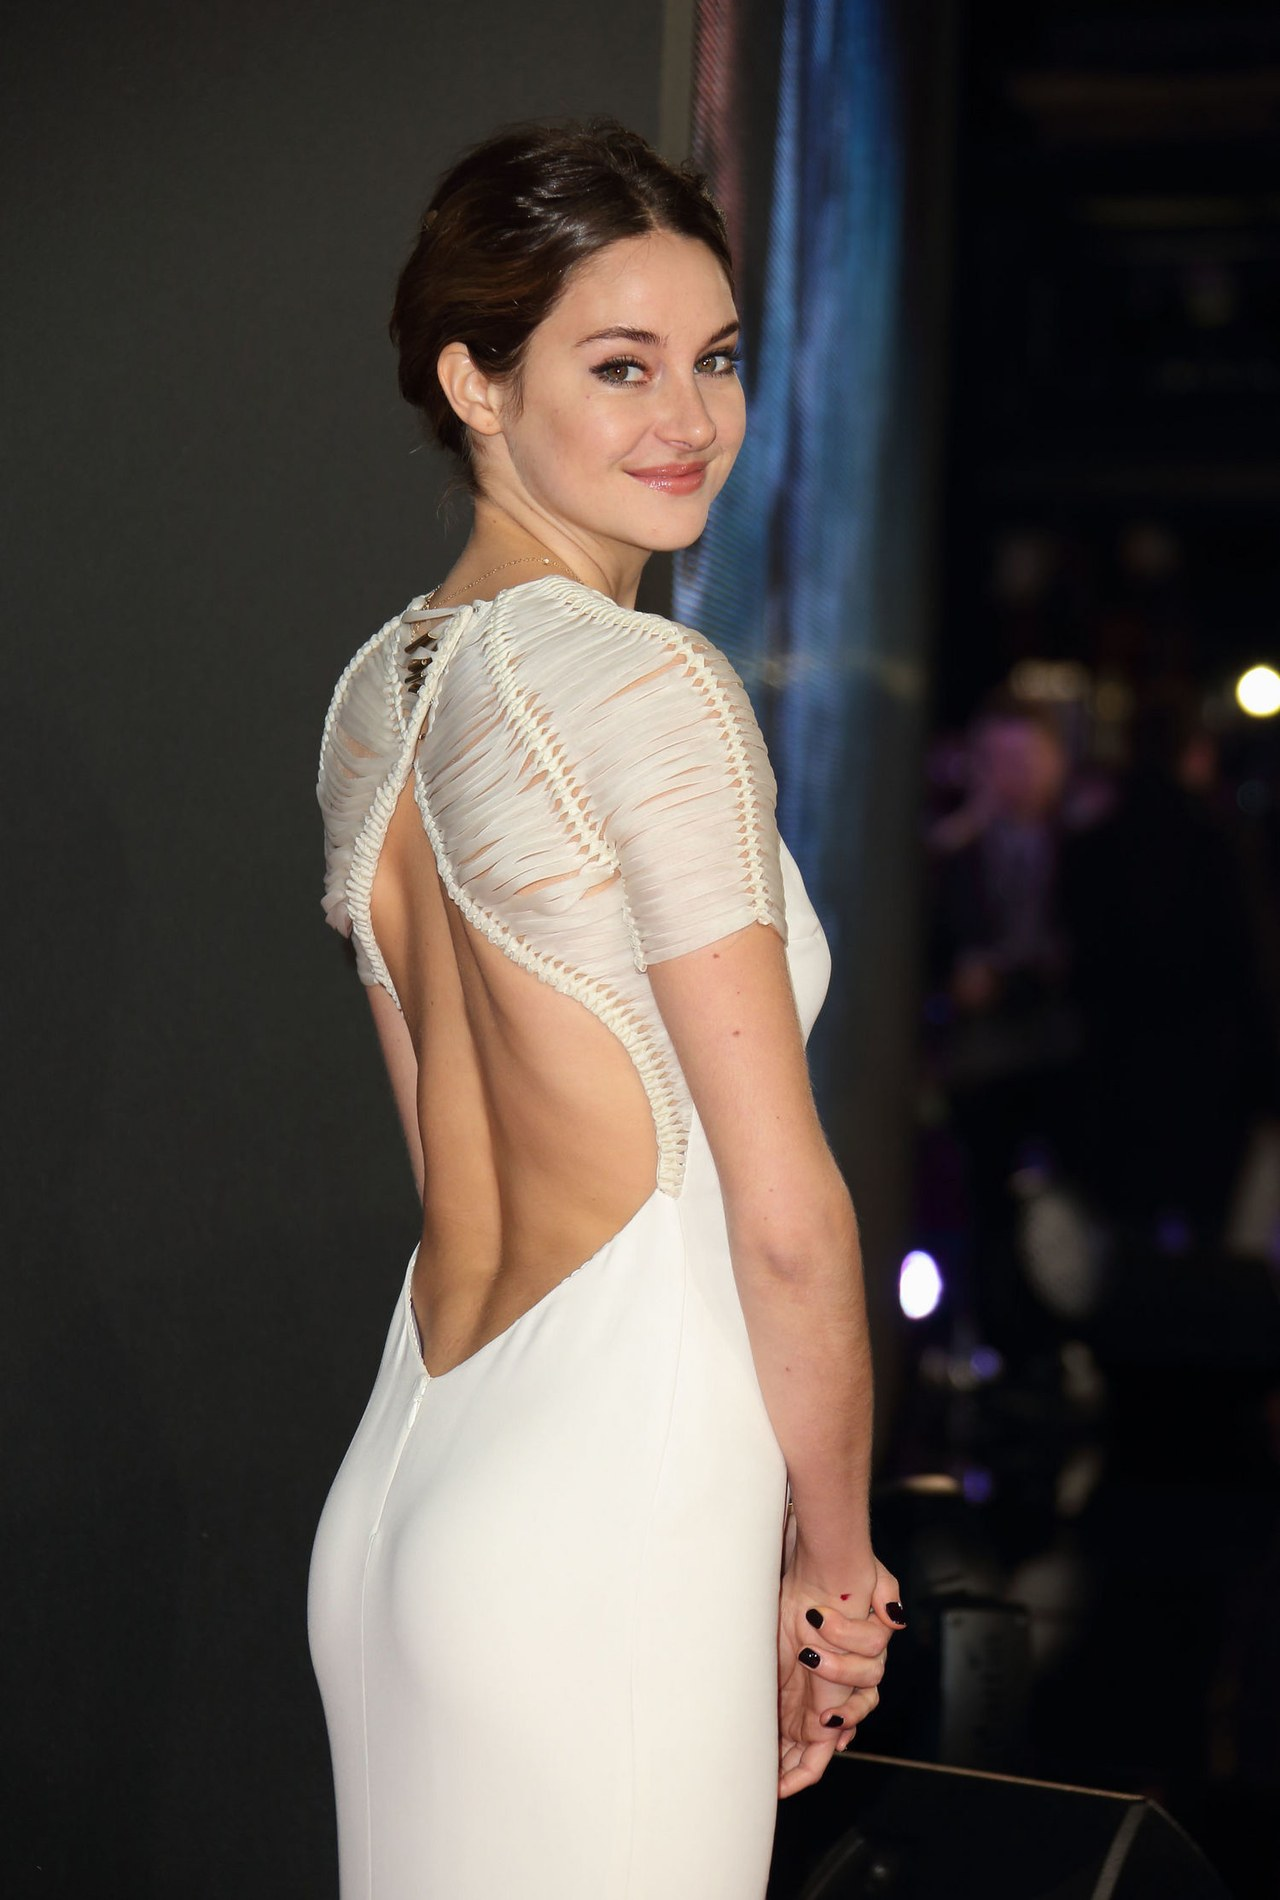 Shailene Woodley in a dress with open back - Shailene Woodley Net Worth, Movies, Family, Private Life, Pictures and Wallpapers